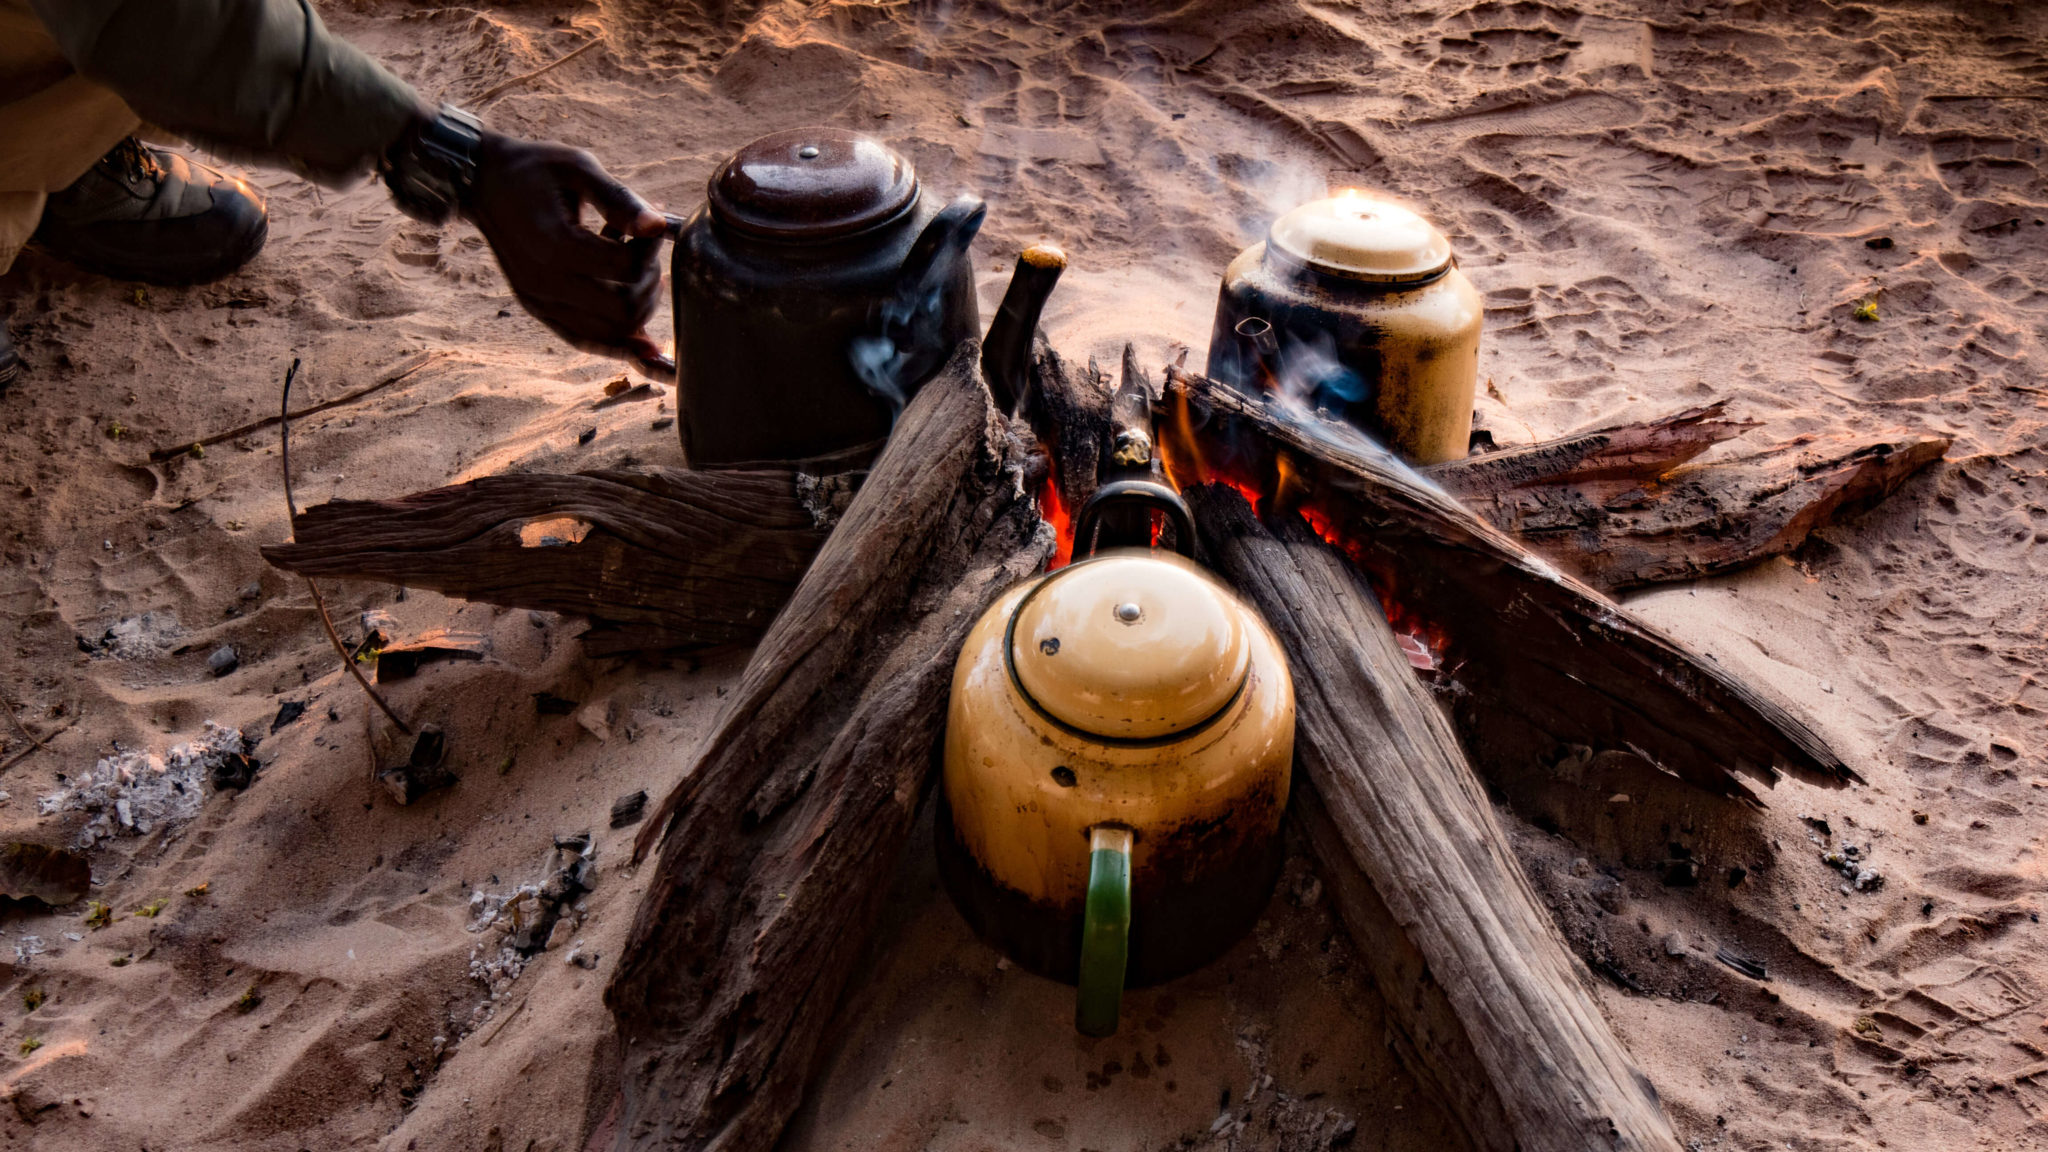 zambia luangwa valley campfire coffee